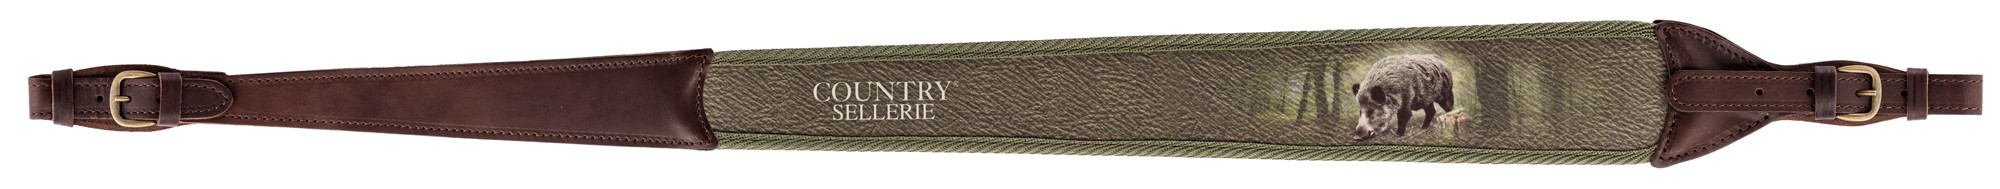 CU1309 Rifle leather double loop buckle - Country Saddlery - CU1309